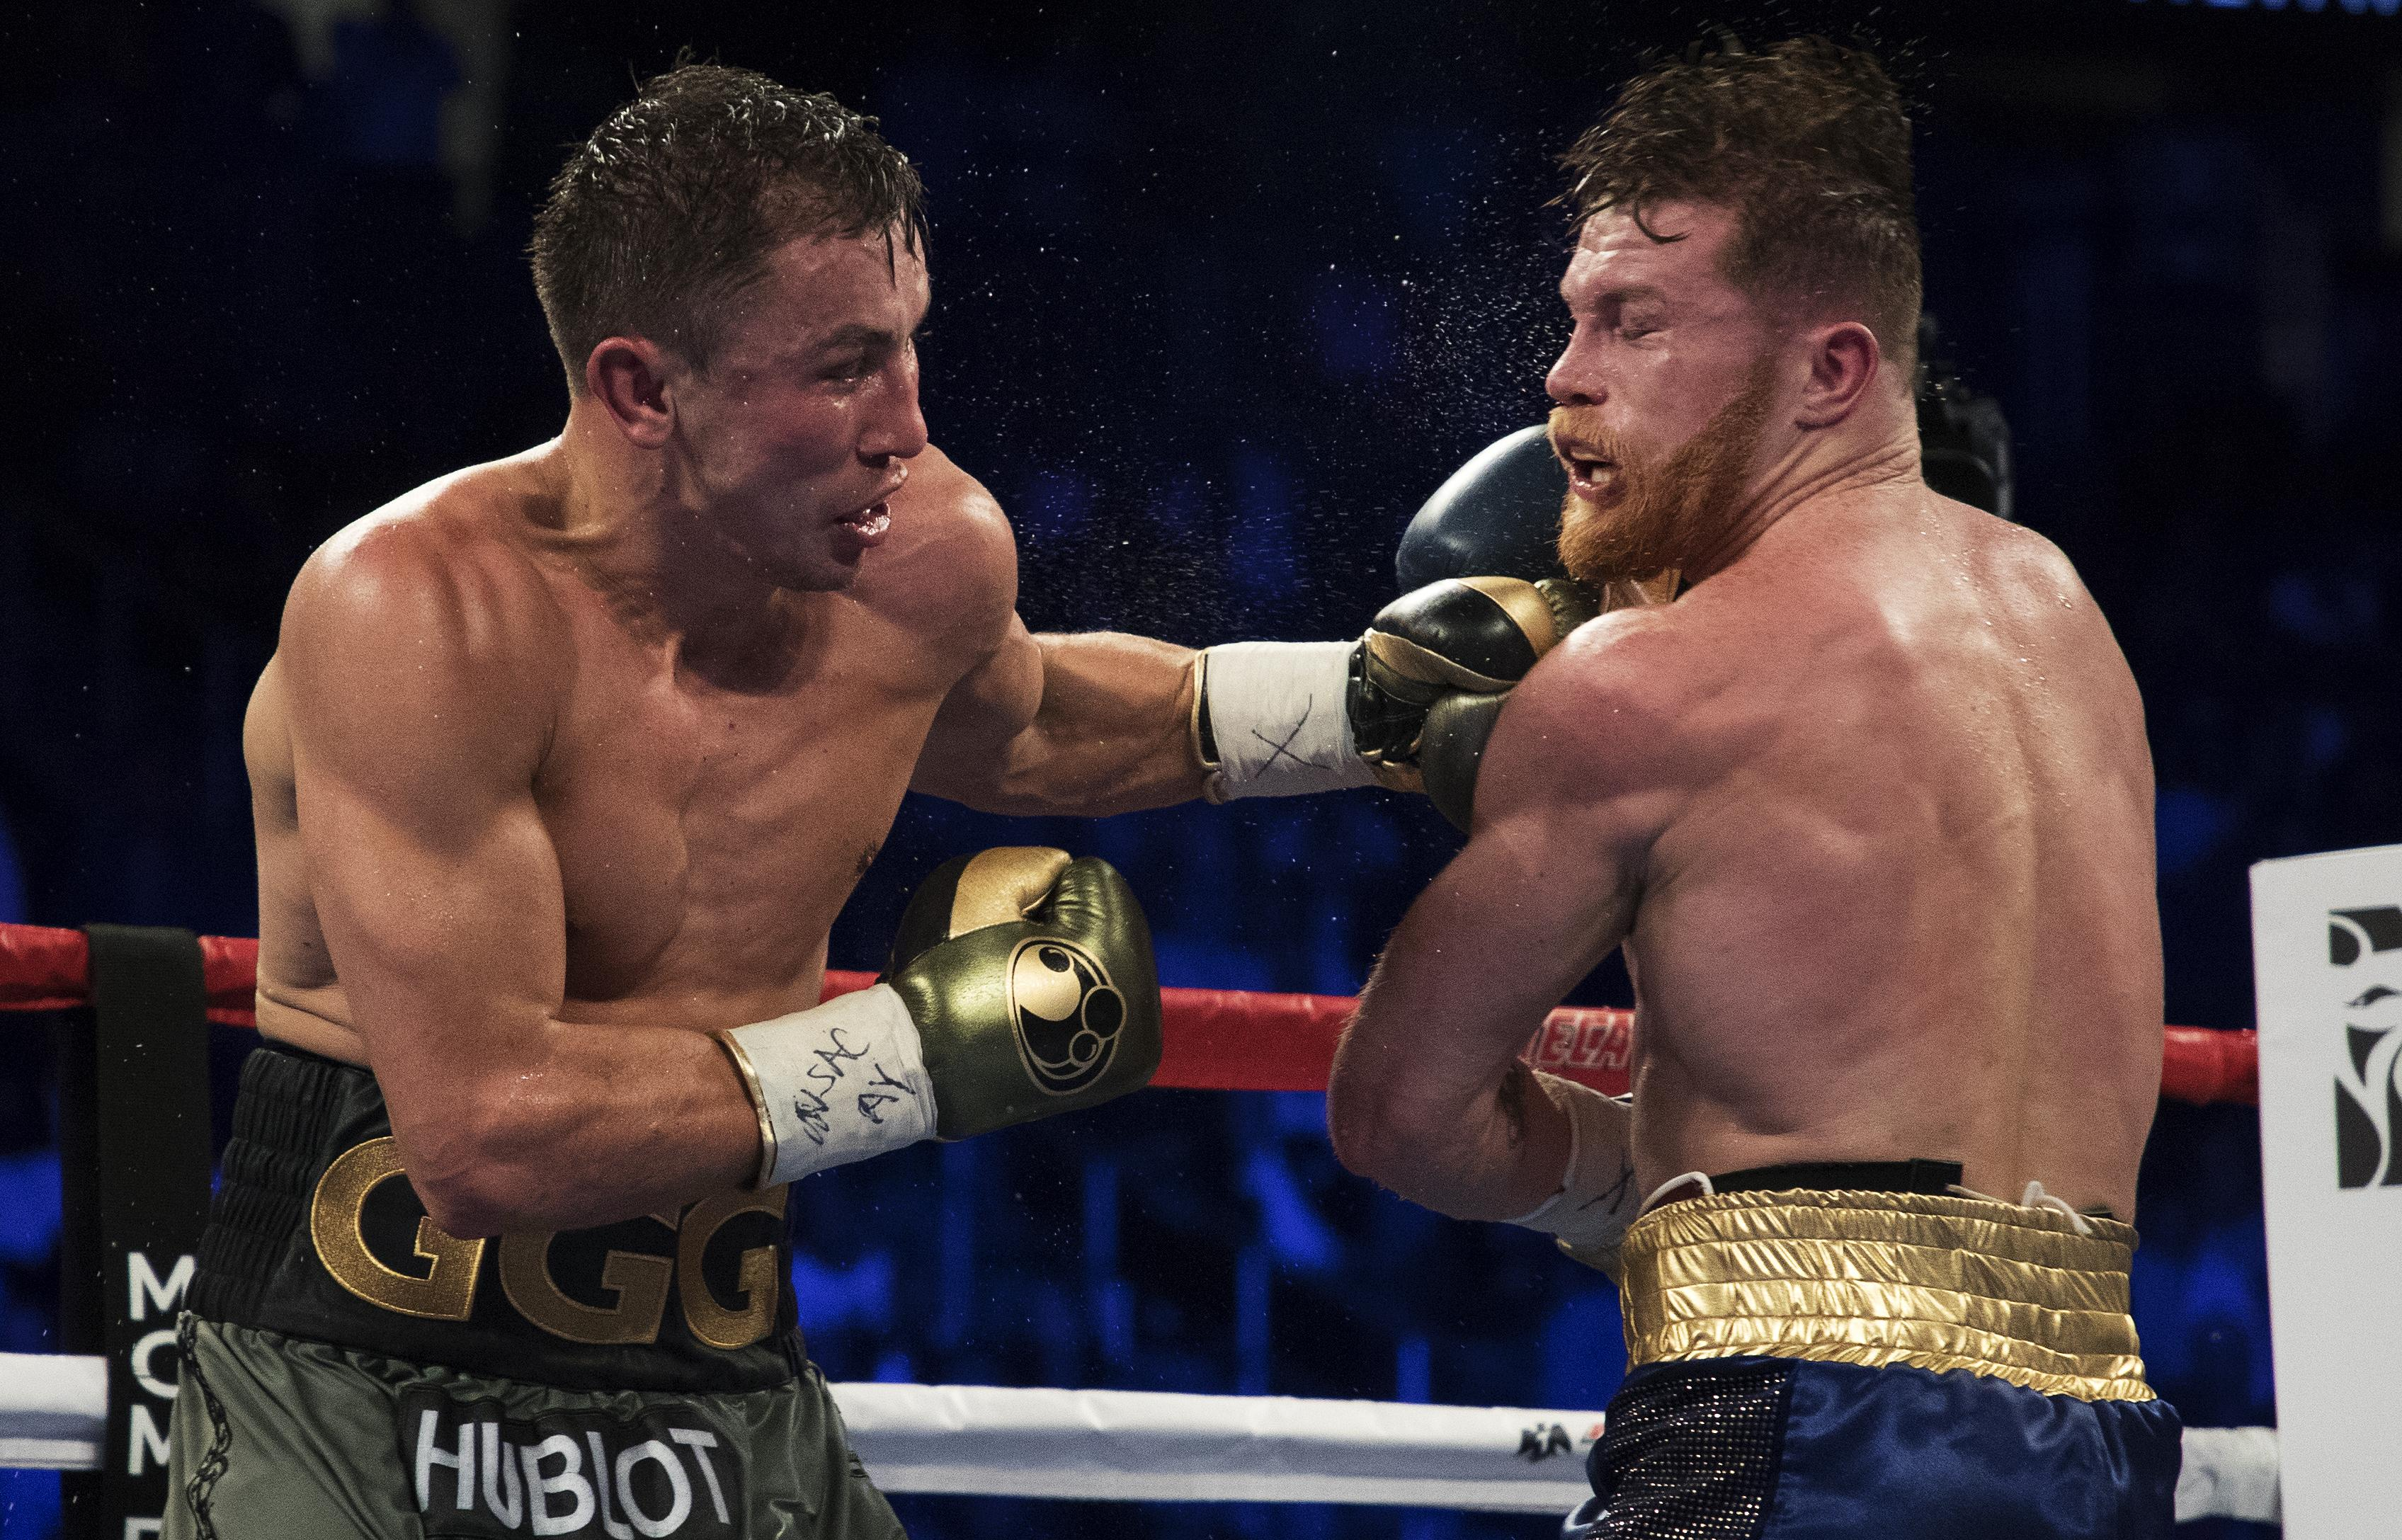 Both fighters claim they won the showdown and were due to settle the score in May